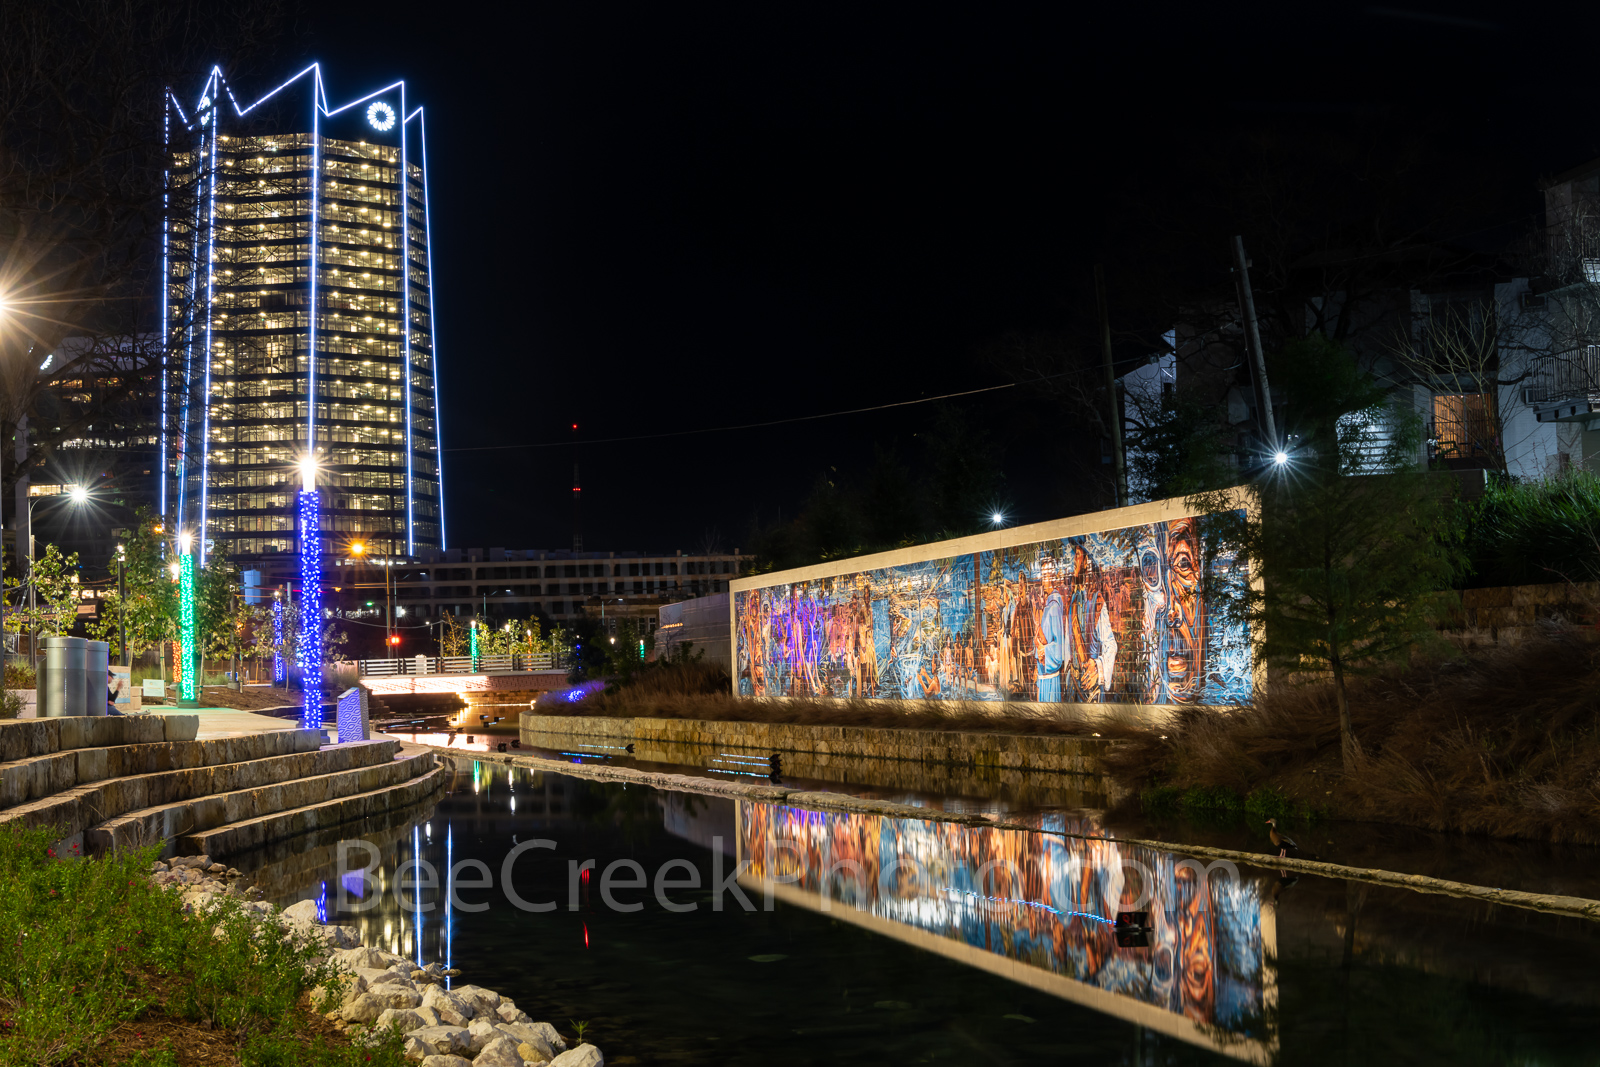 Frost Tower, San Pedro Creek, reflections, water,  San Antonio, creek, wall art, mural, mural, colorful, history, christmas lights, downtown, Texas, boardwalk, , photo